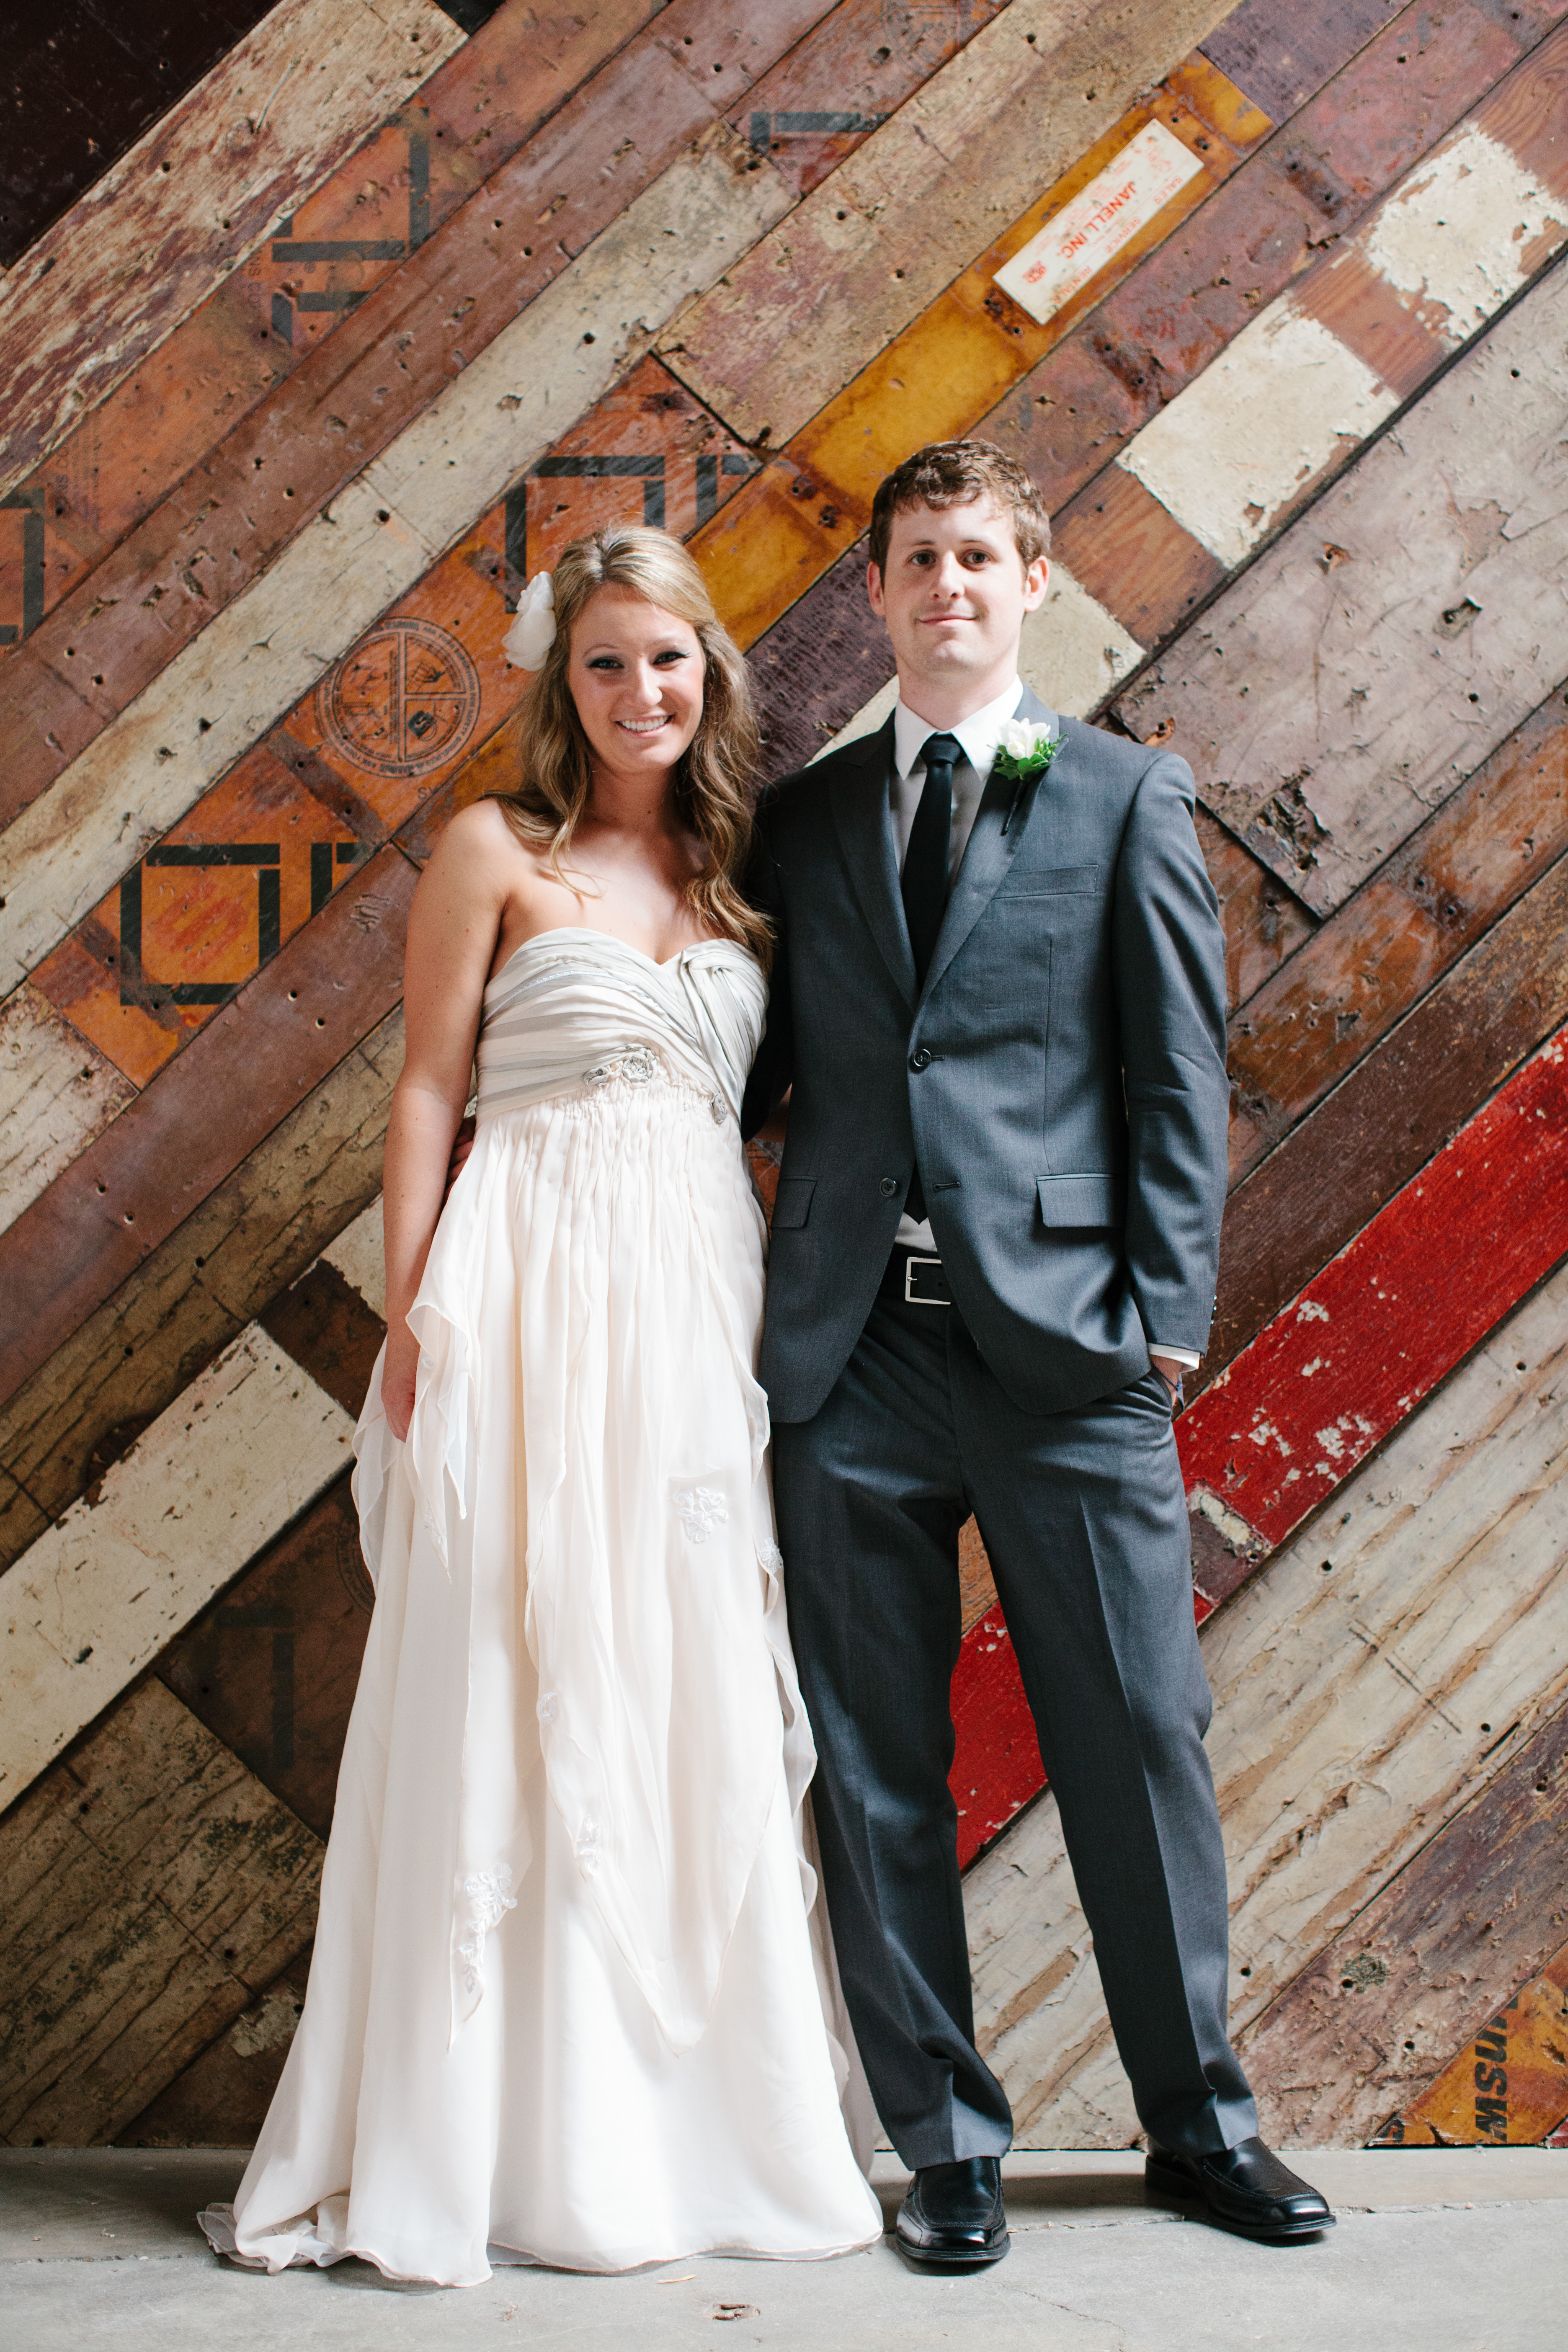 Custom Wedding Dresses Within Reach: Avail & Company – Native and ...